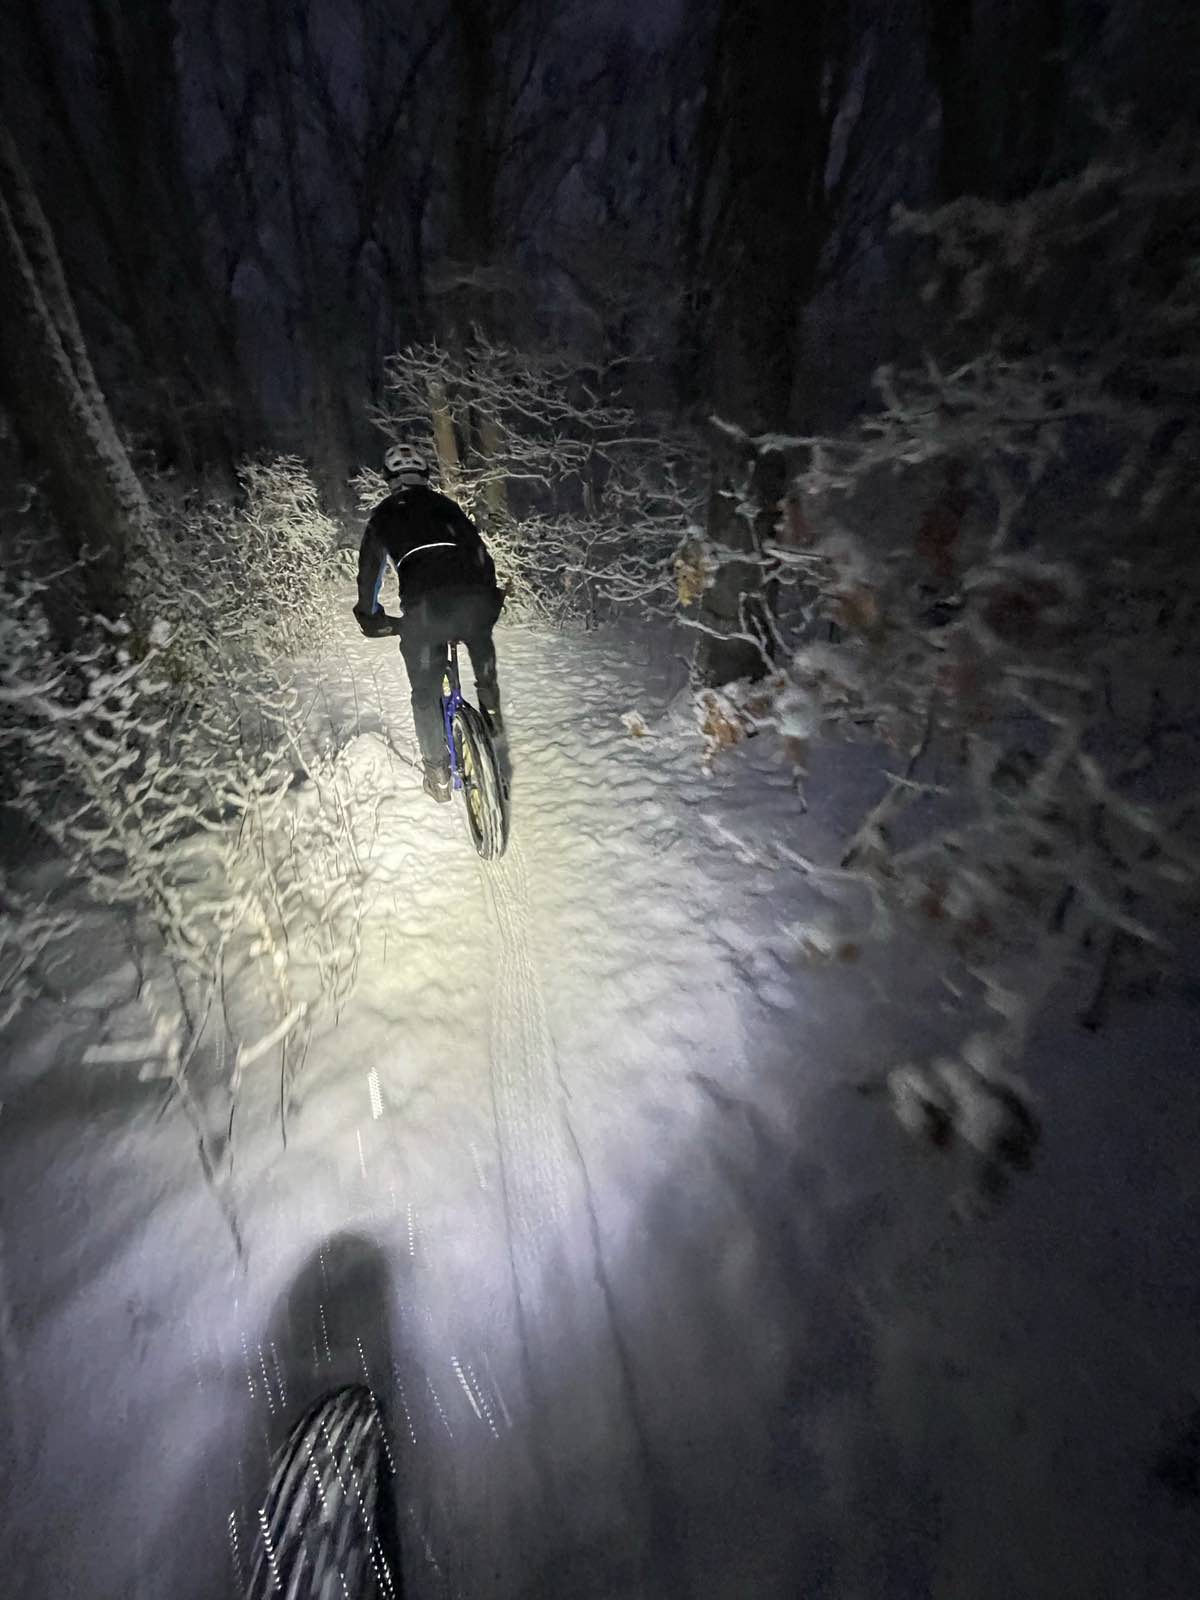 bikerumor pic of the day two bike riders at night in a snow storm outside boston. the headlamp of the first rider is lighting up the trail and the second rider.